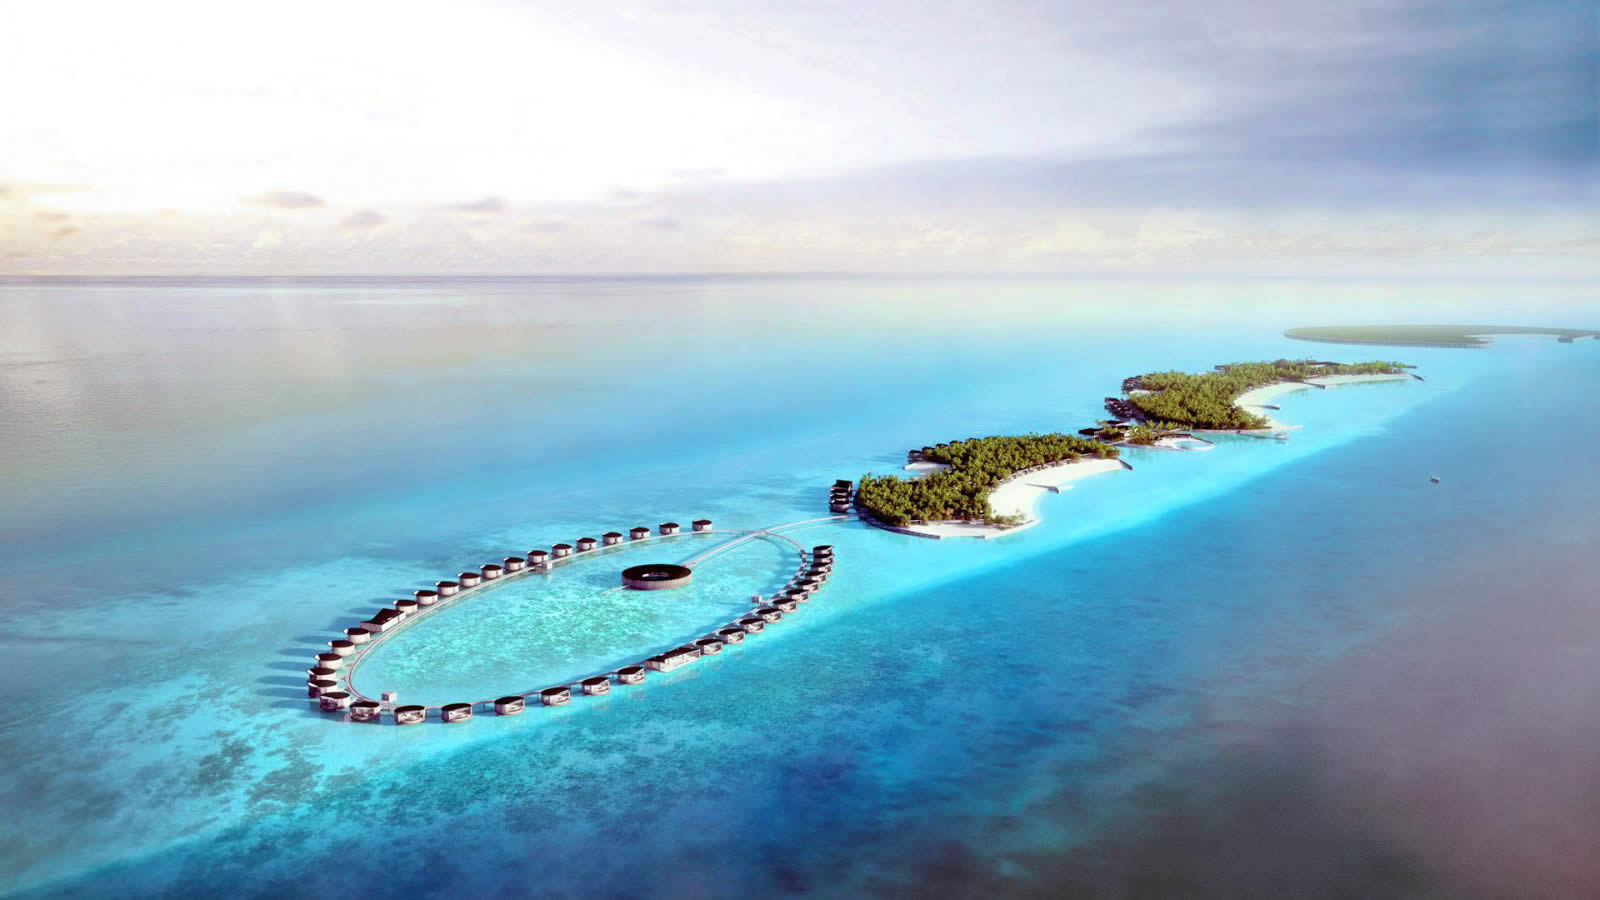 The Ritz-Carlton Maldives Fari Islands aerial